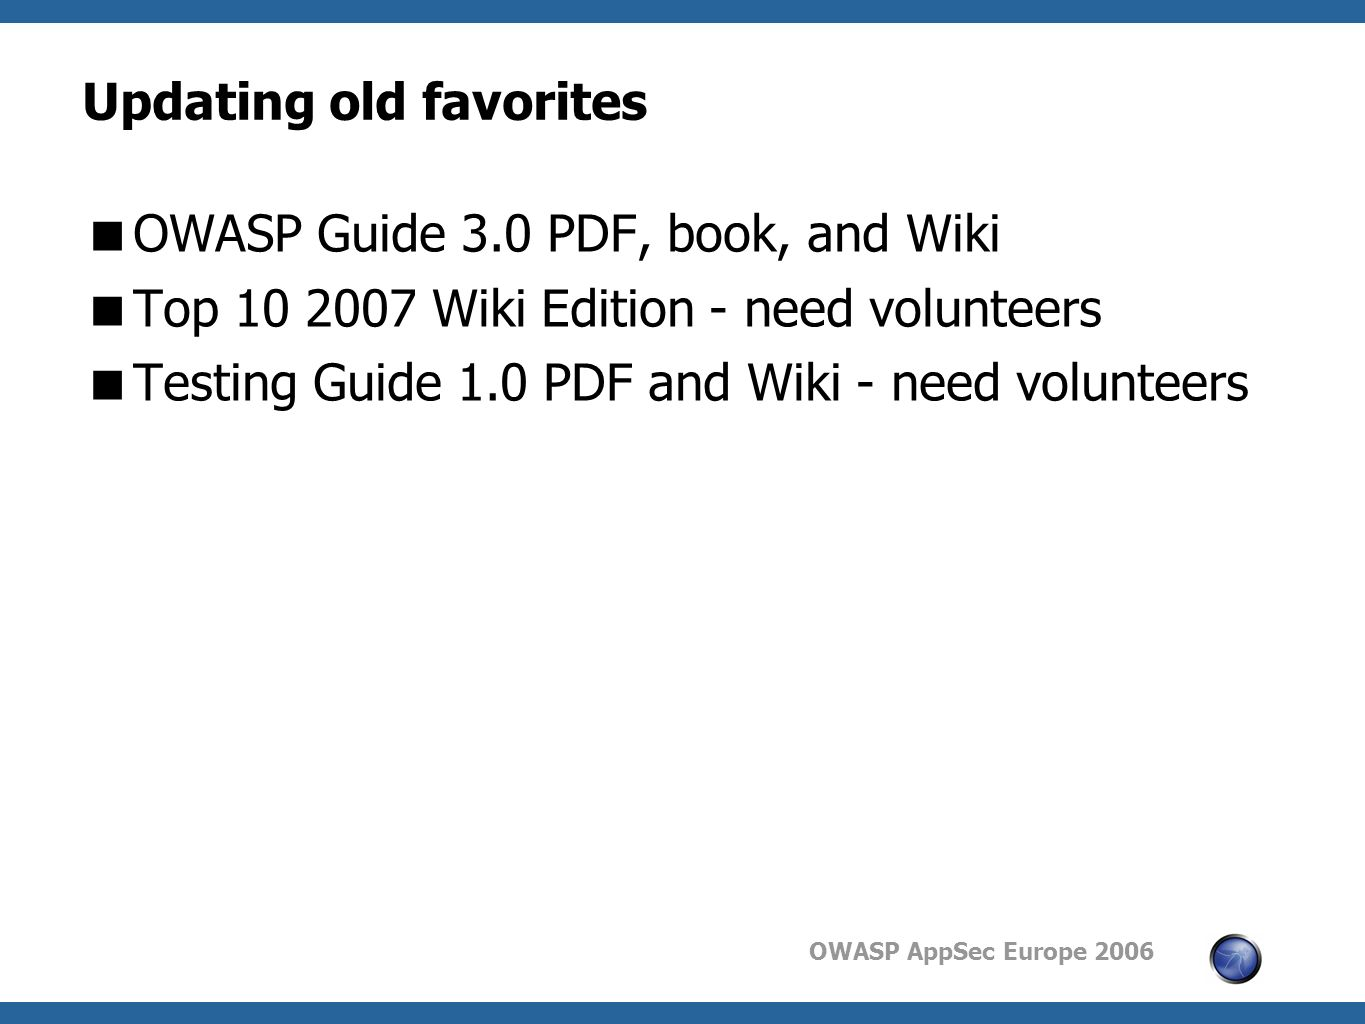 OWASP AppSec Europe 2006 Updating old favorites  OWASP Guide 3.0 PDF, book, and Wiki  Top Wiki Edition - need volunteers  Testing Guide 1.0 PDF and Wiki - need volunteers